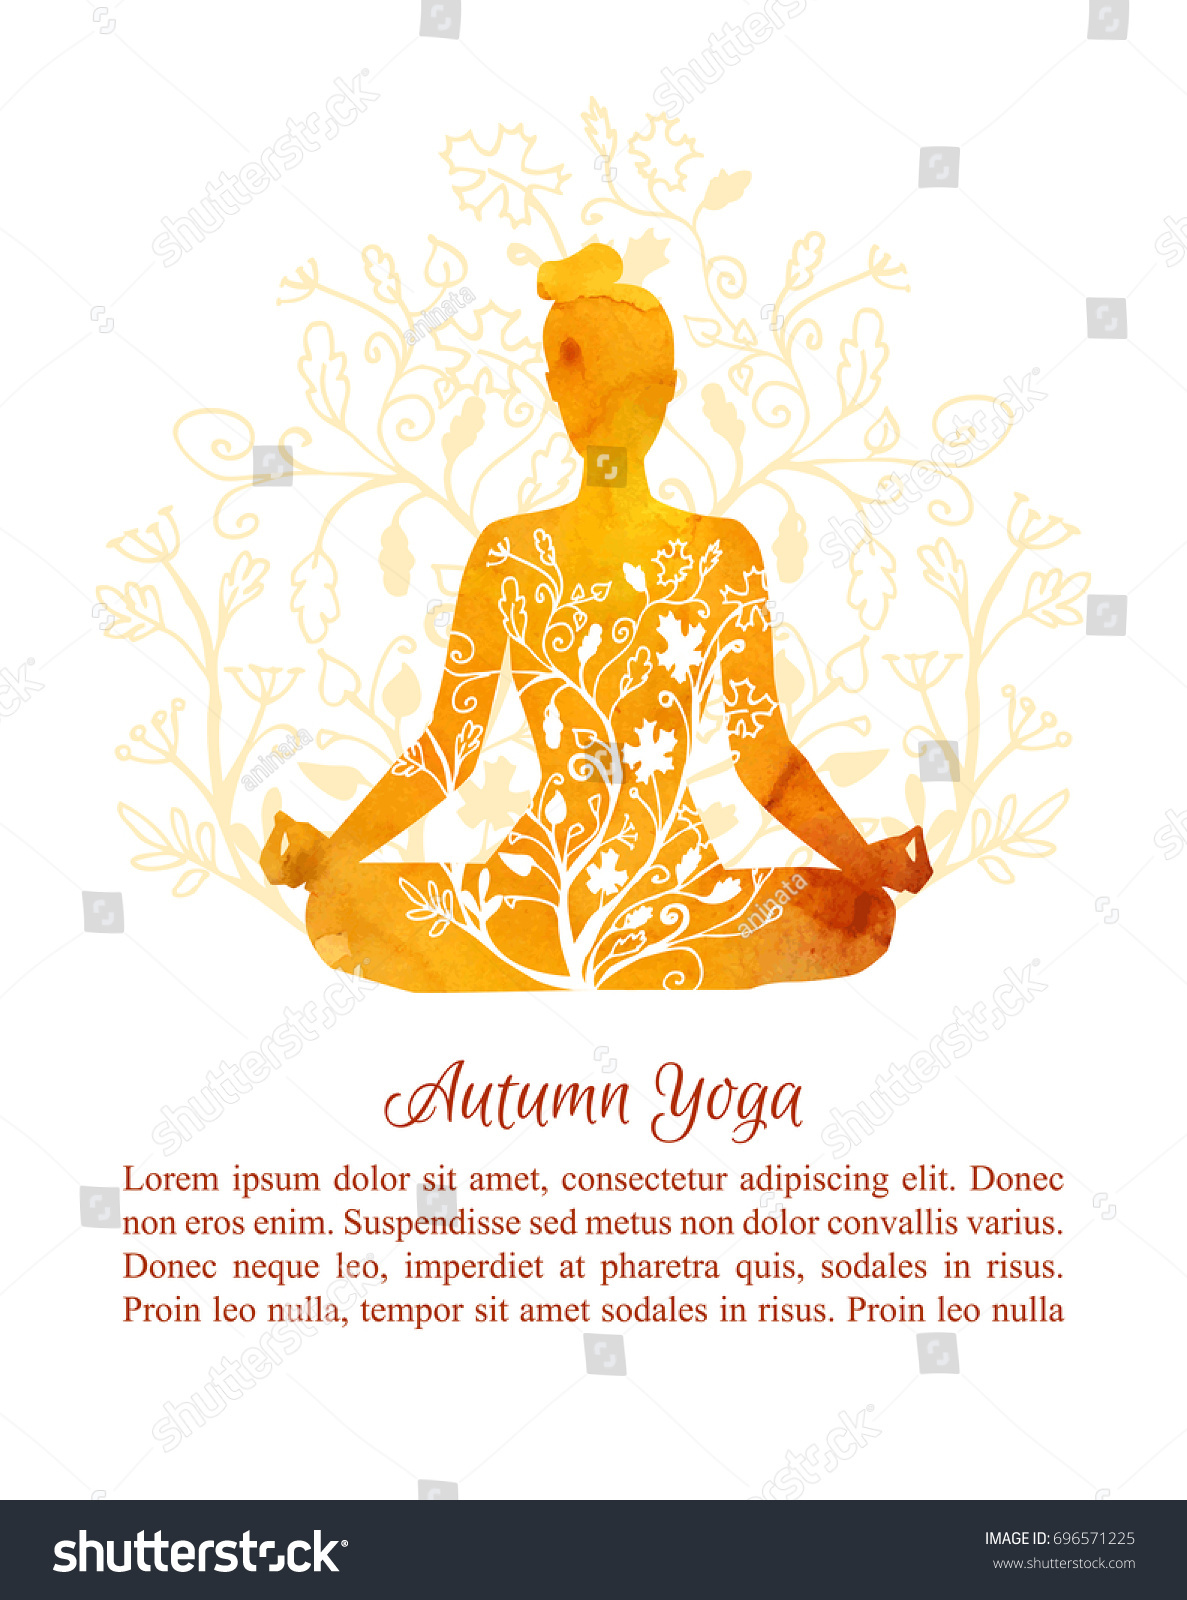 Card Poster Flyer Template Autumn Yoga Stock Vector Royalty Free 696571225